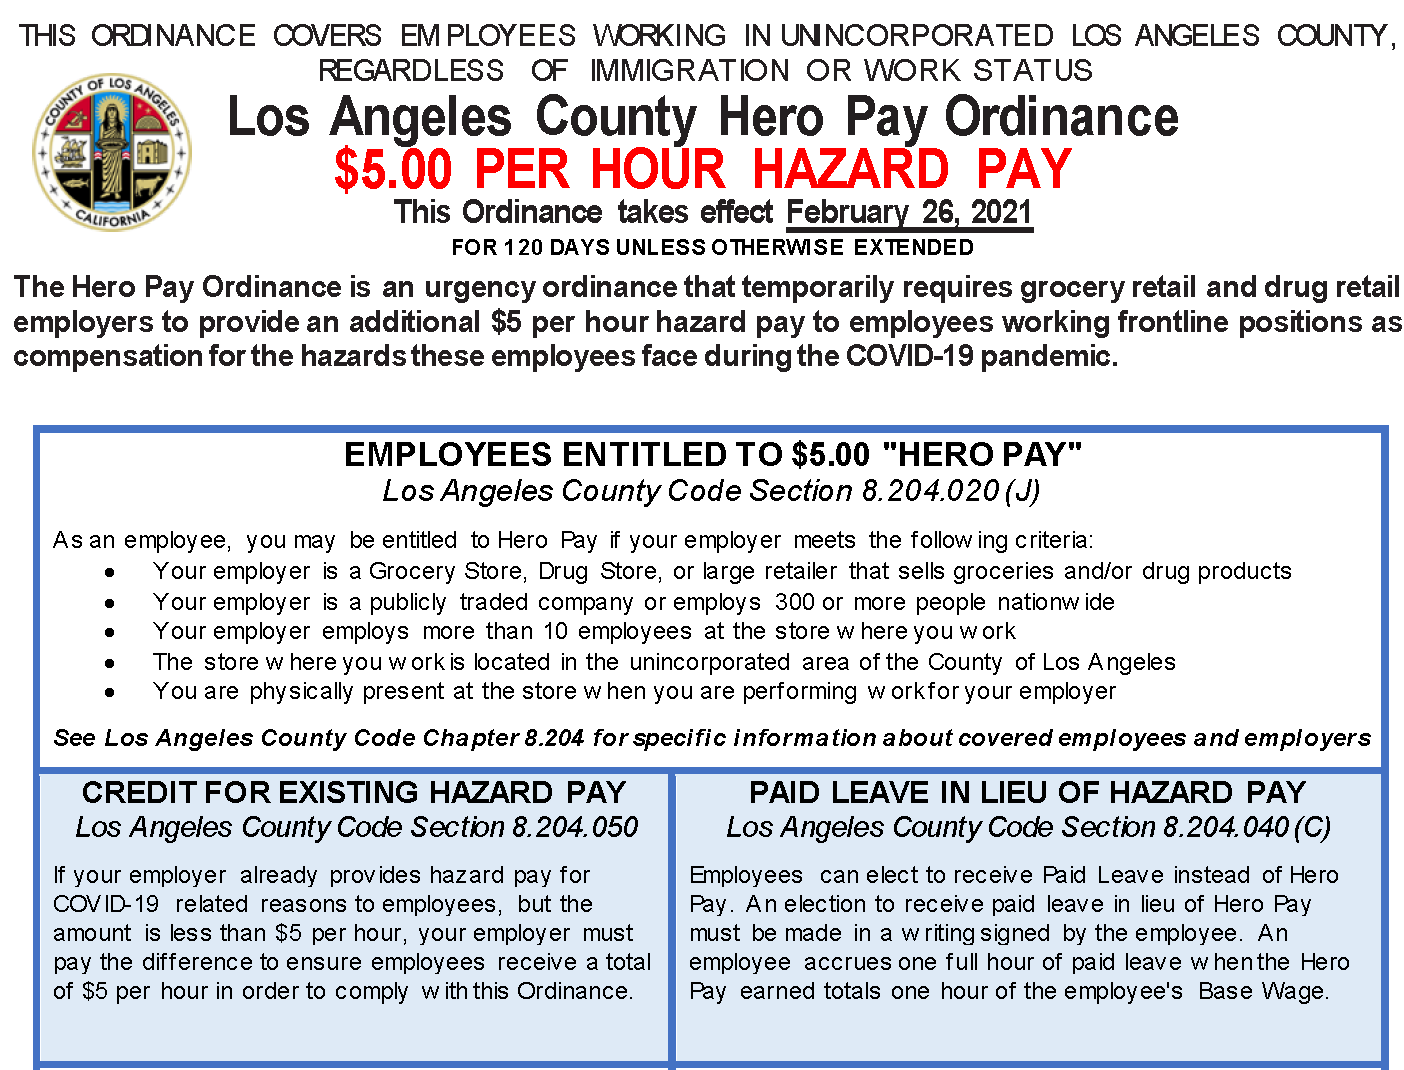 Partial image of required LA County Hero Pay workplace posting